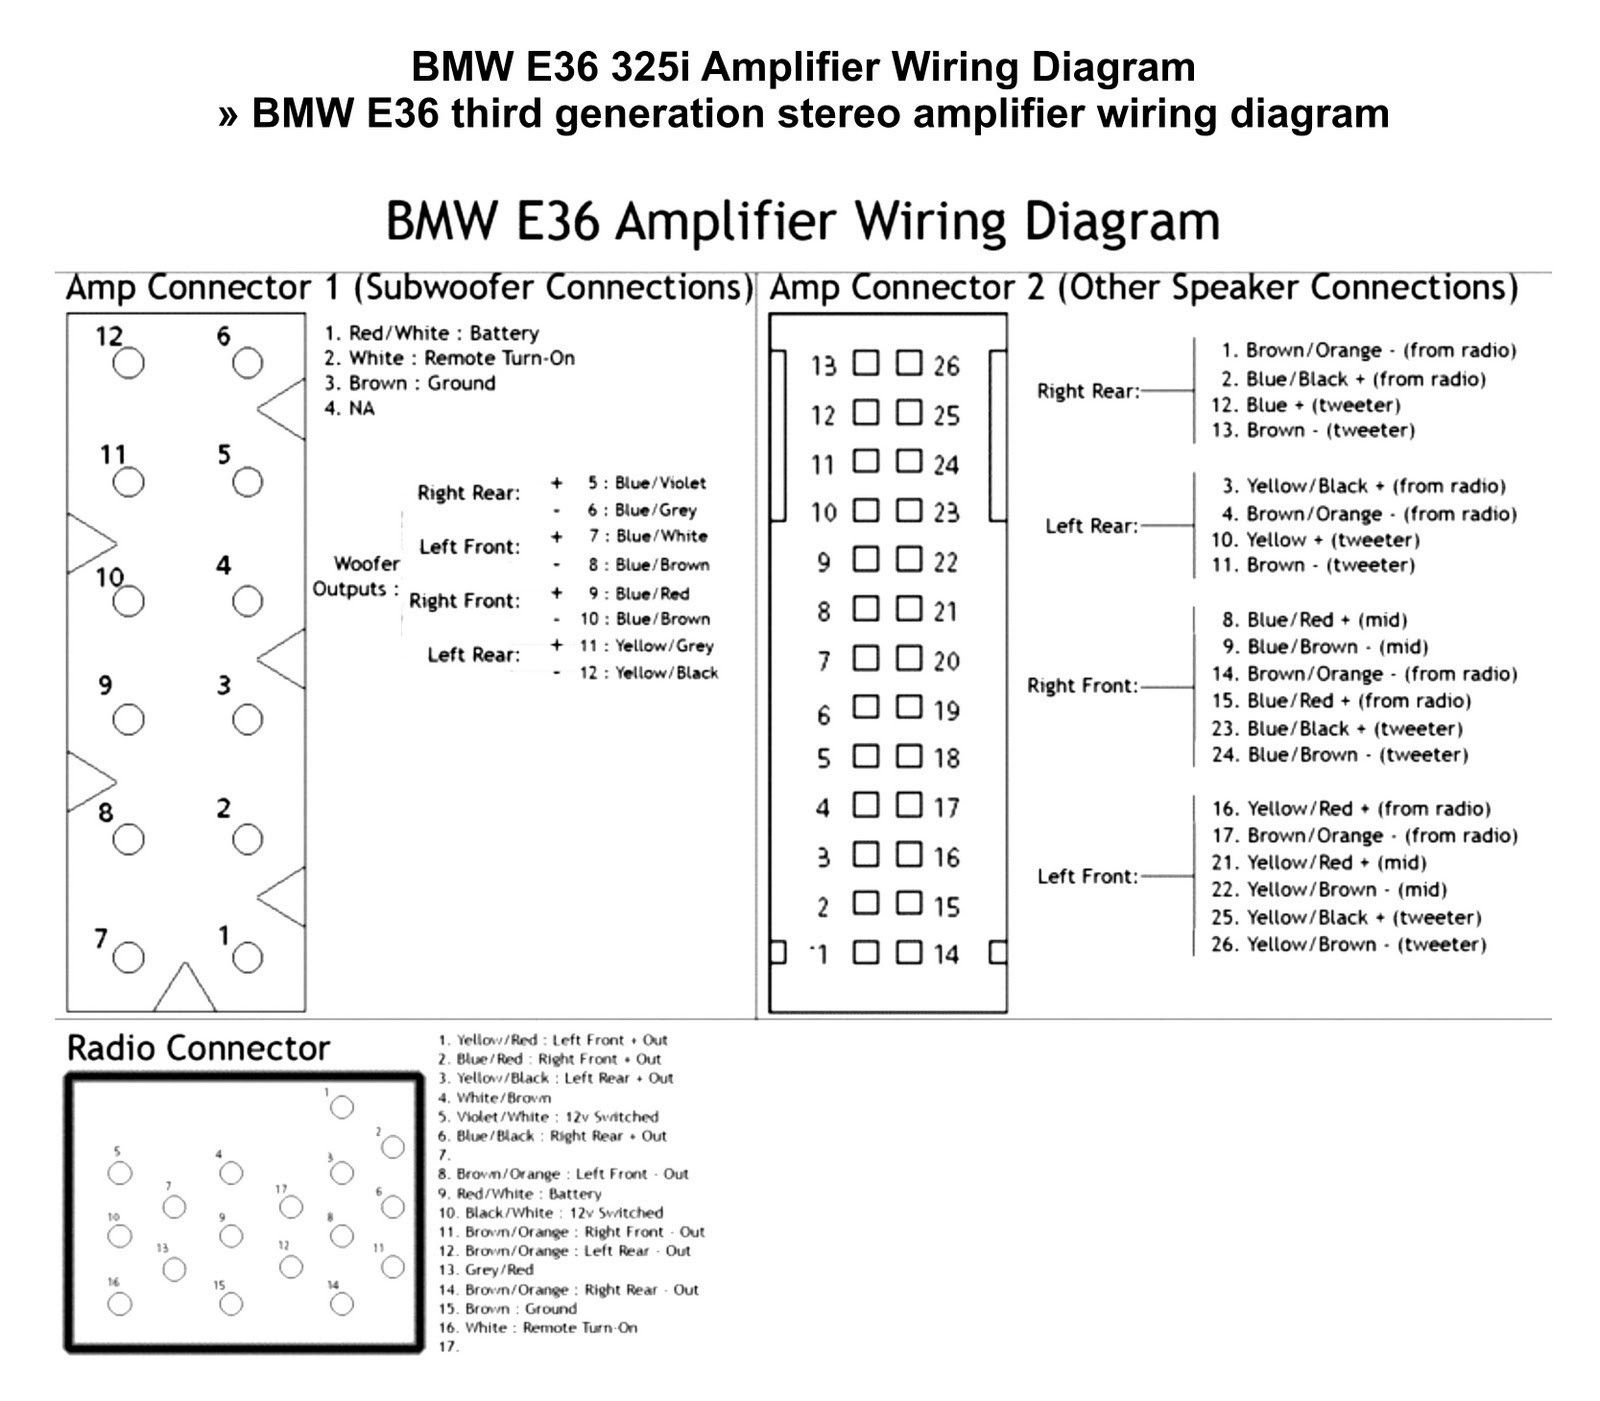 New Bmw Amplifier Wiring Diagram  Diagram  Diagramtemplate  Diagramsample